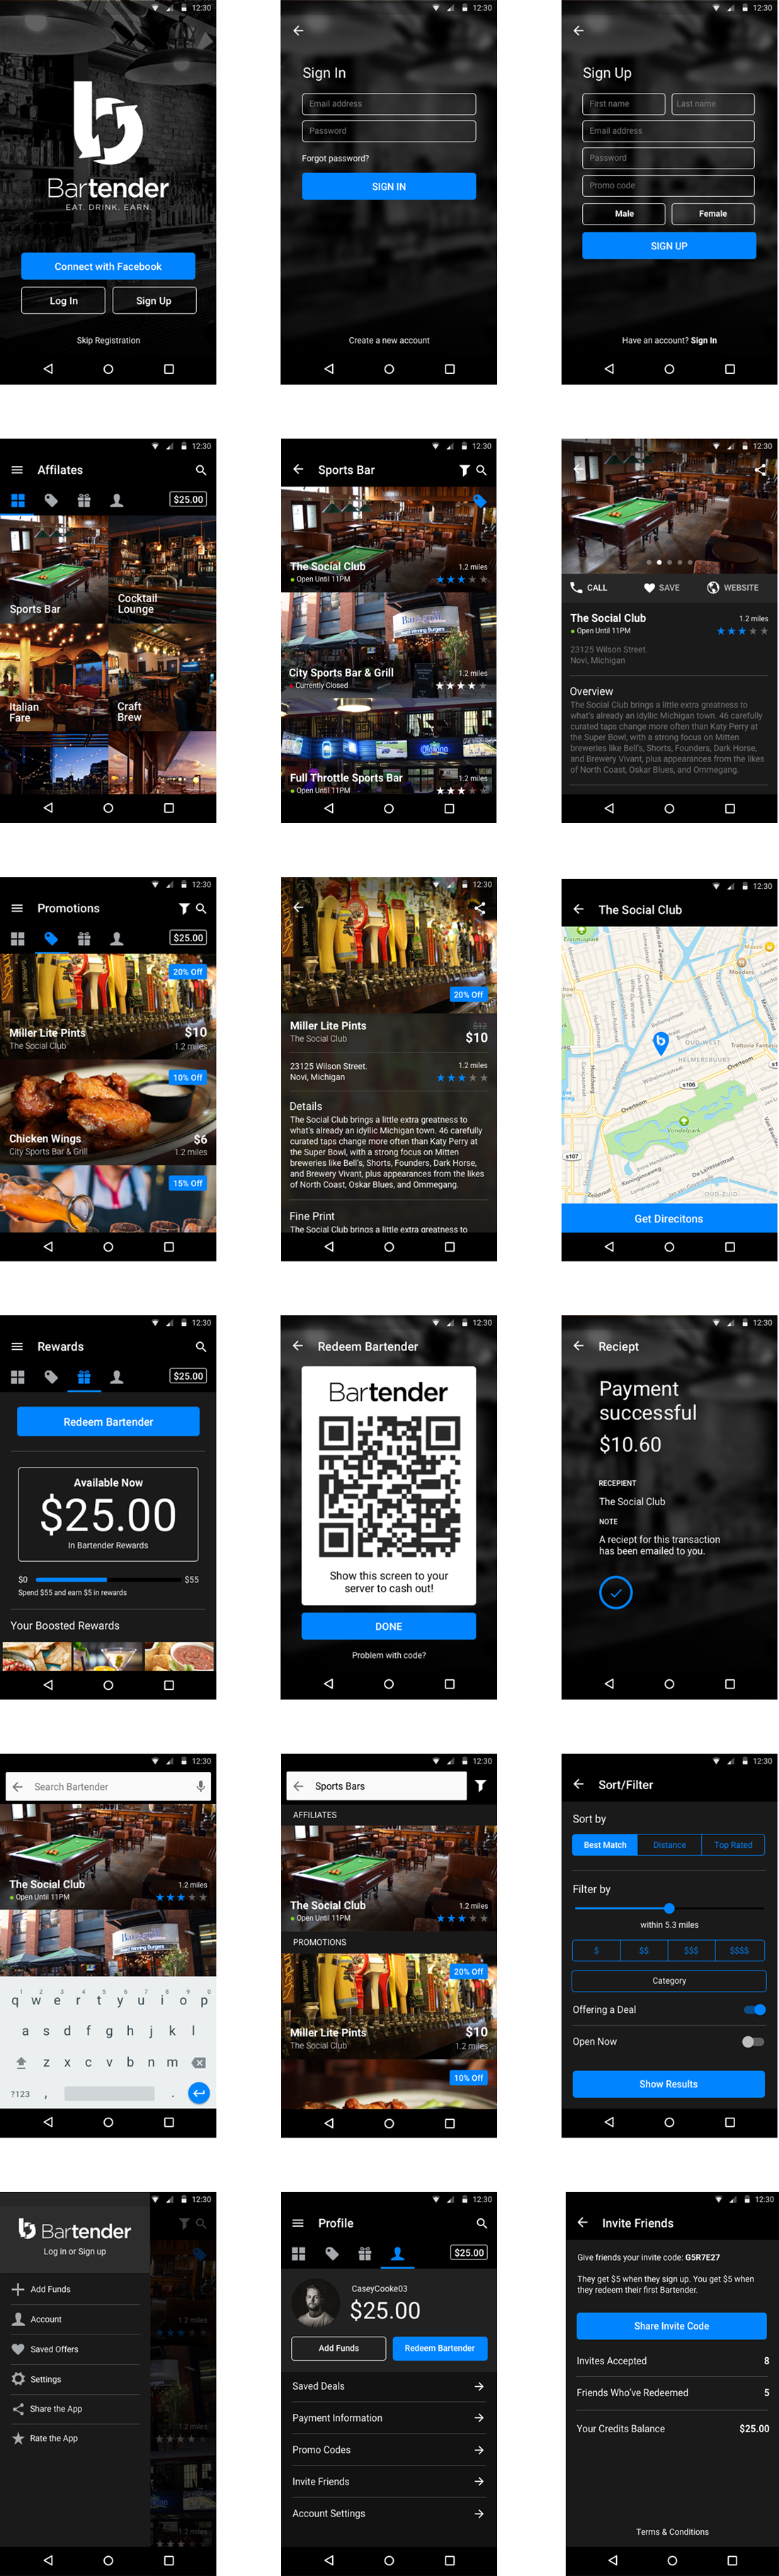 BarTender-App-Screens-Flat-2